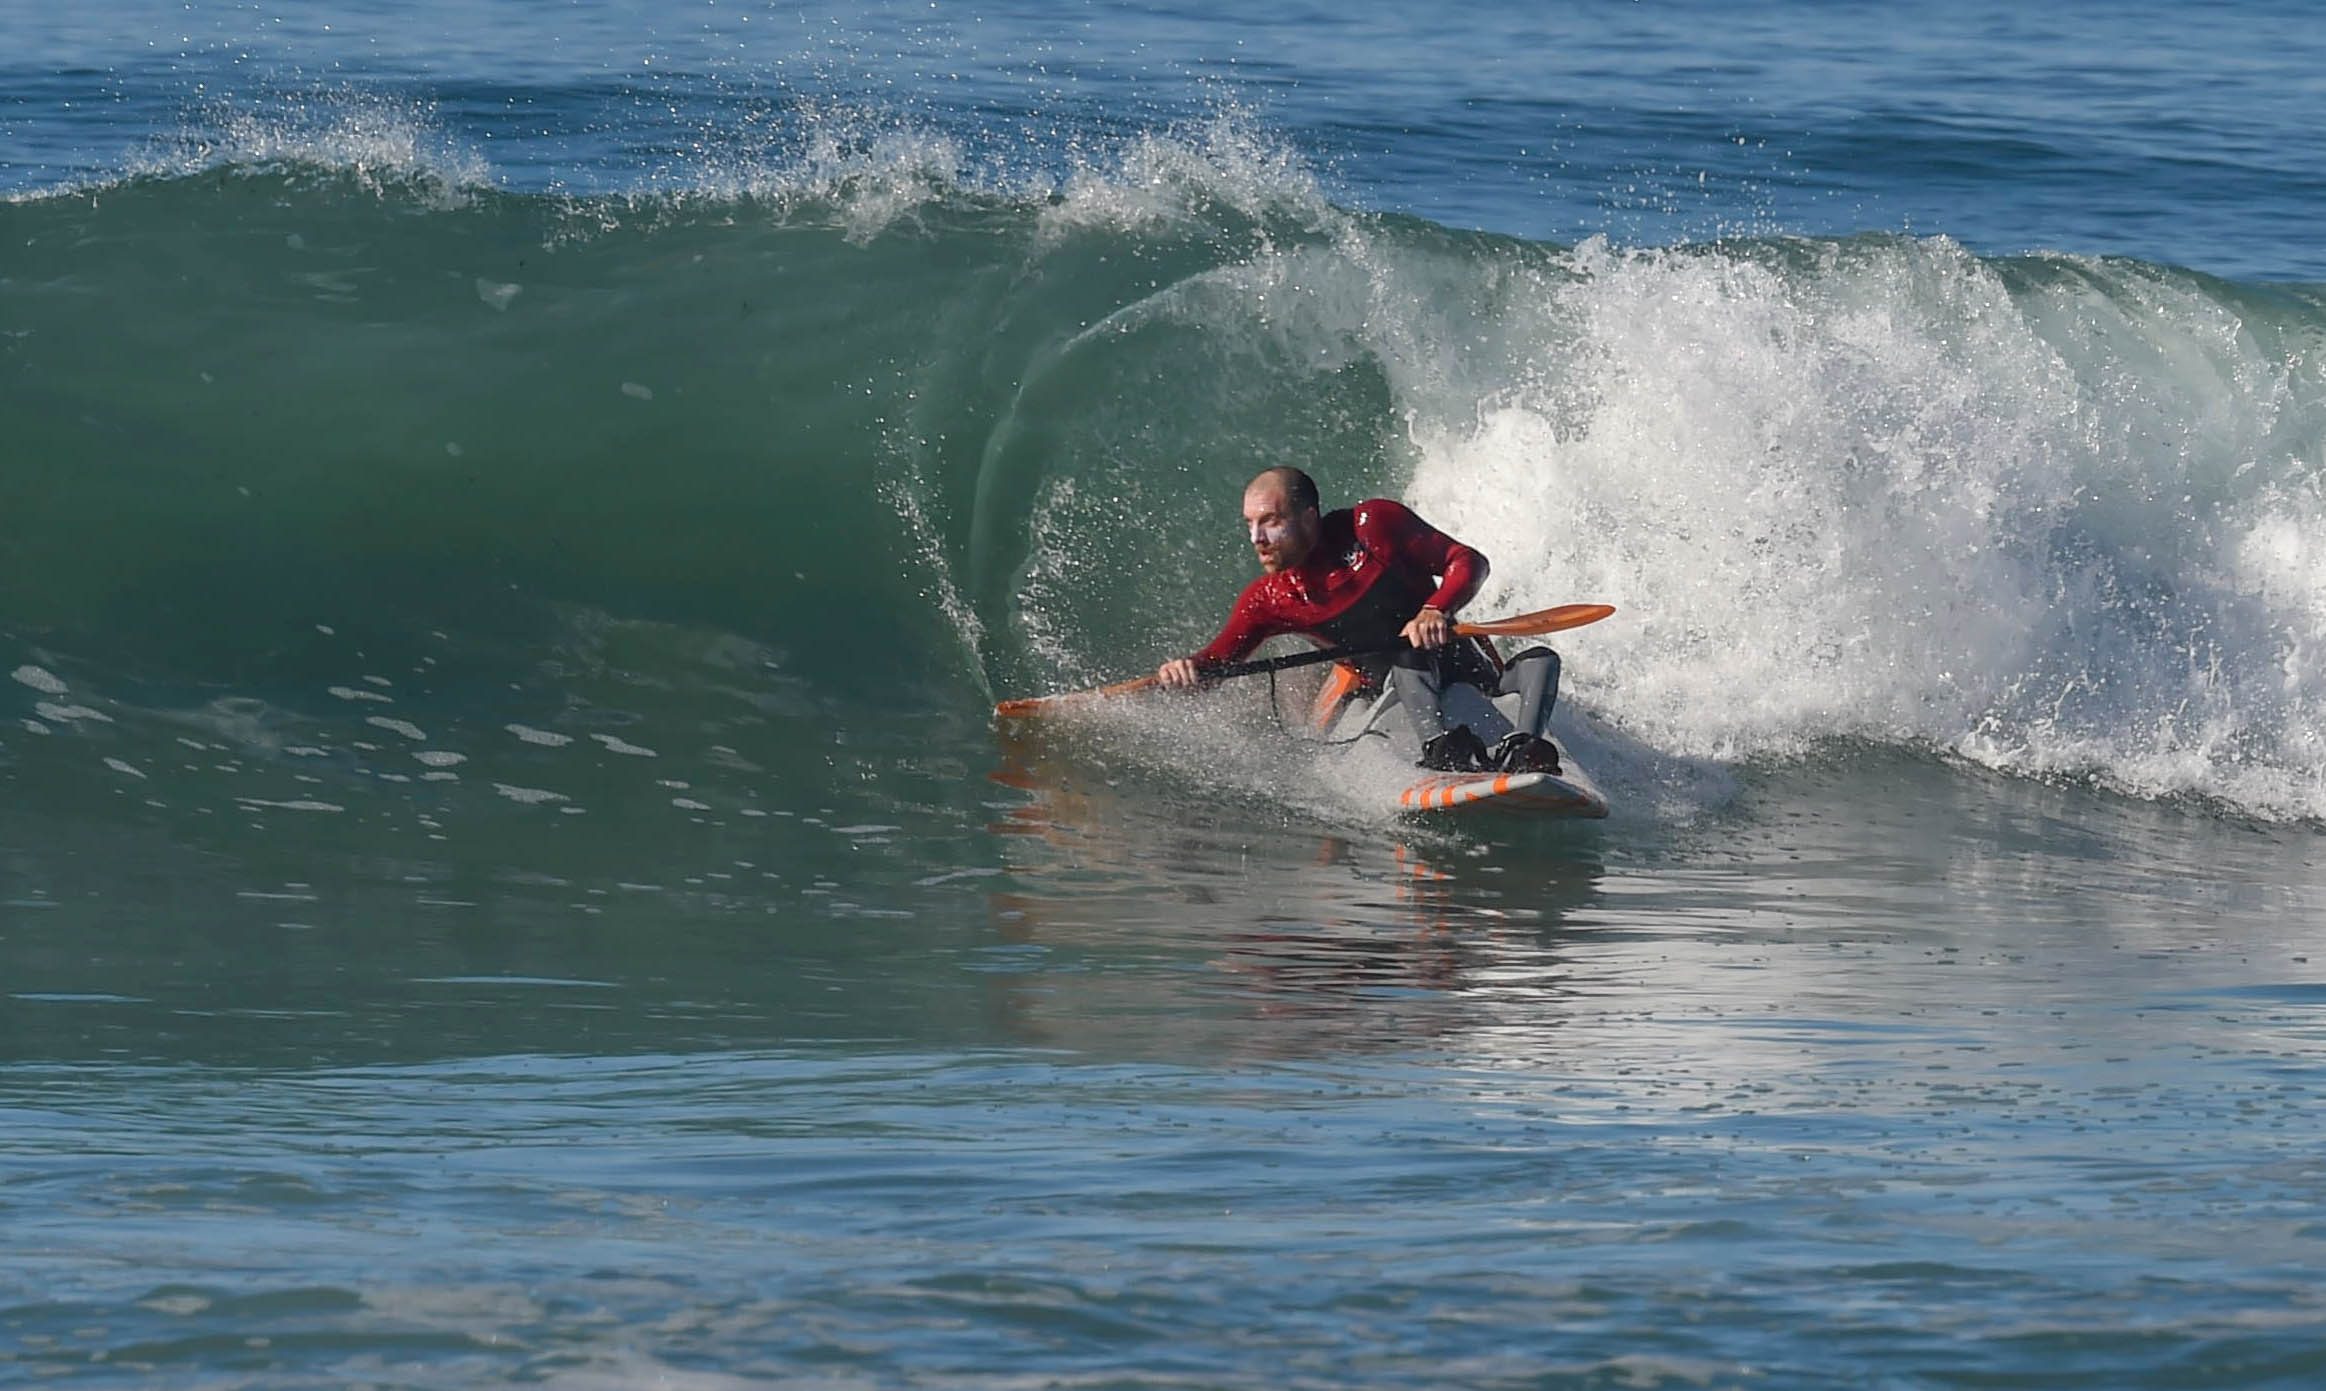 Some of the insiders were small fun and pretty like this one. Cool paddle drag.